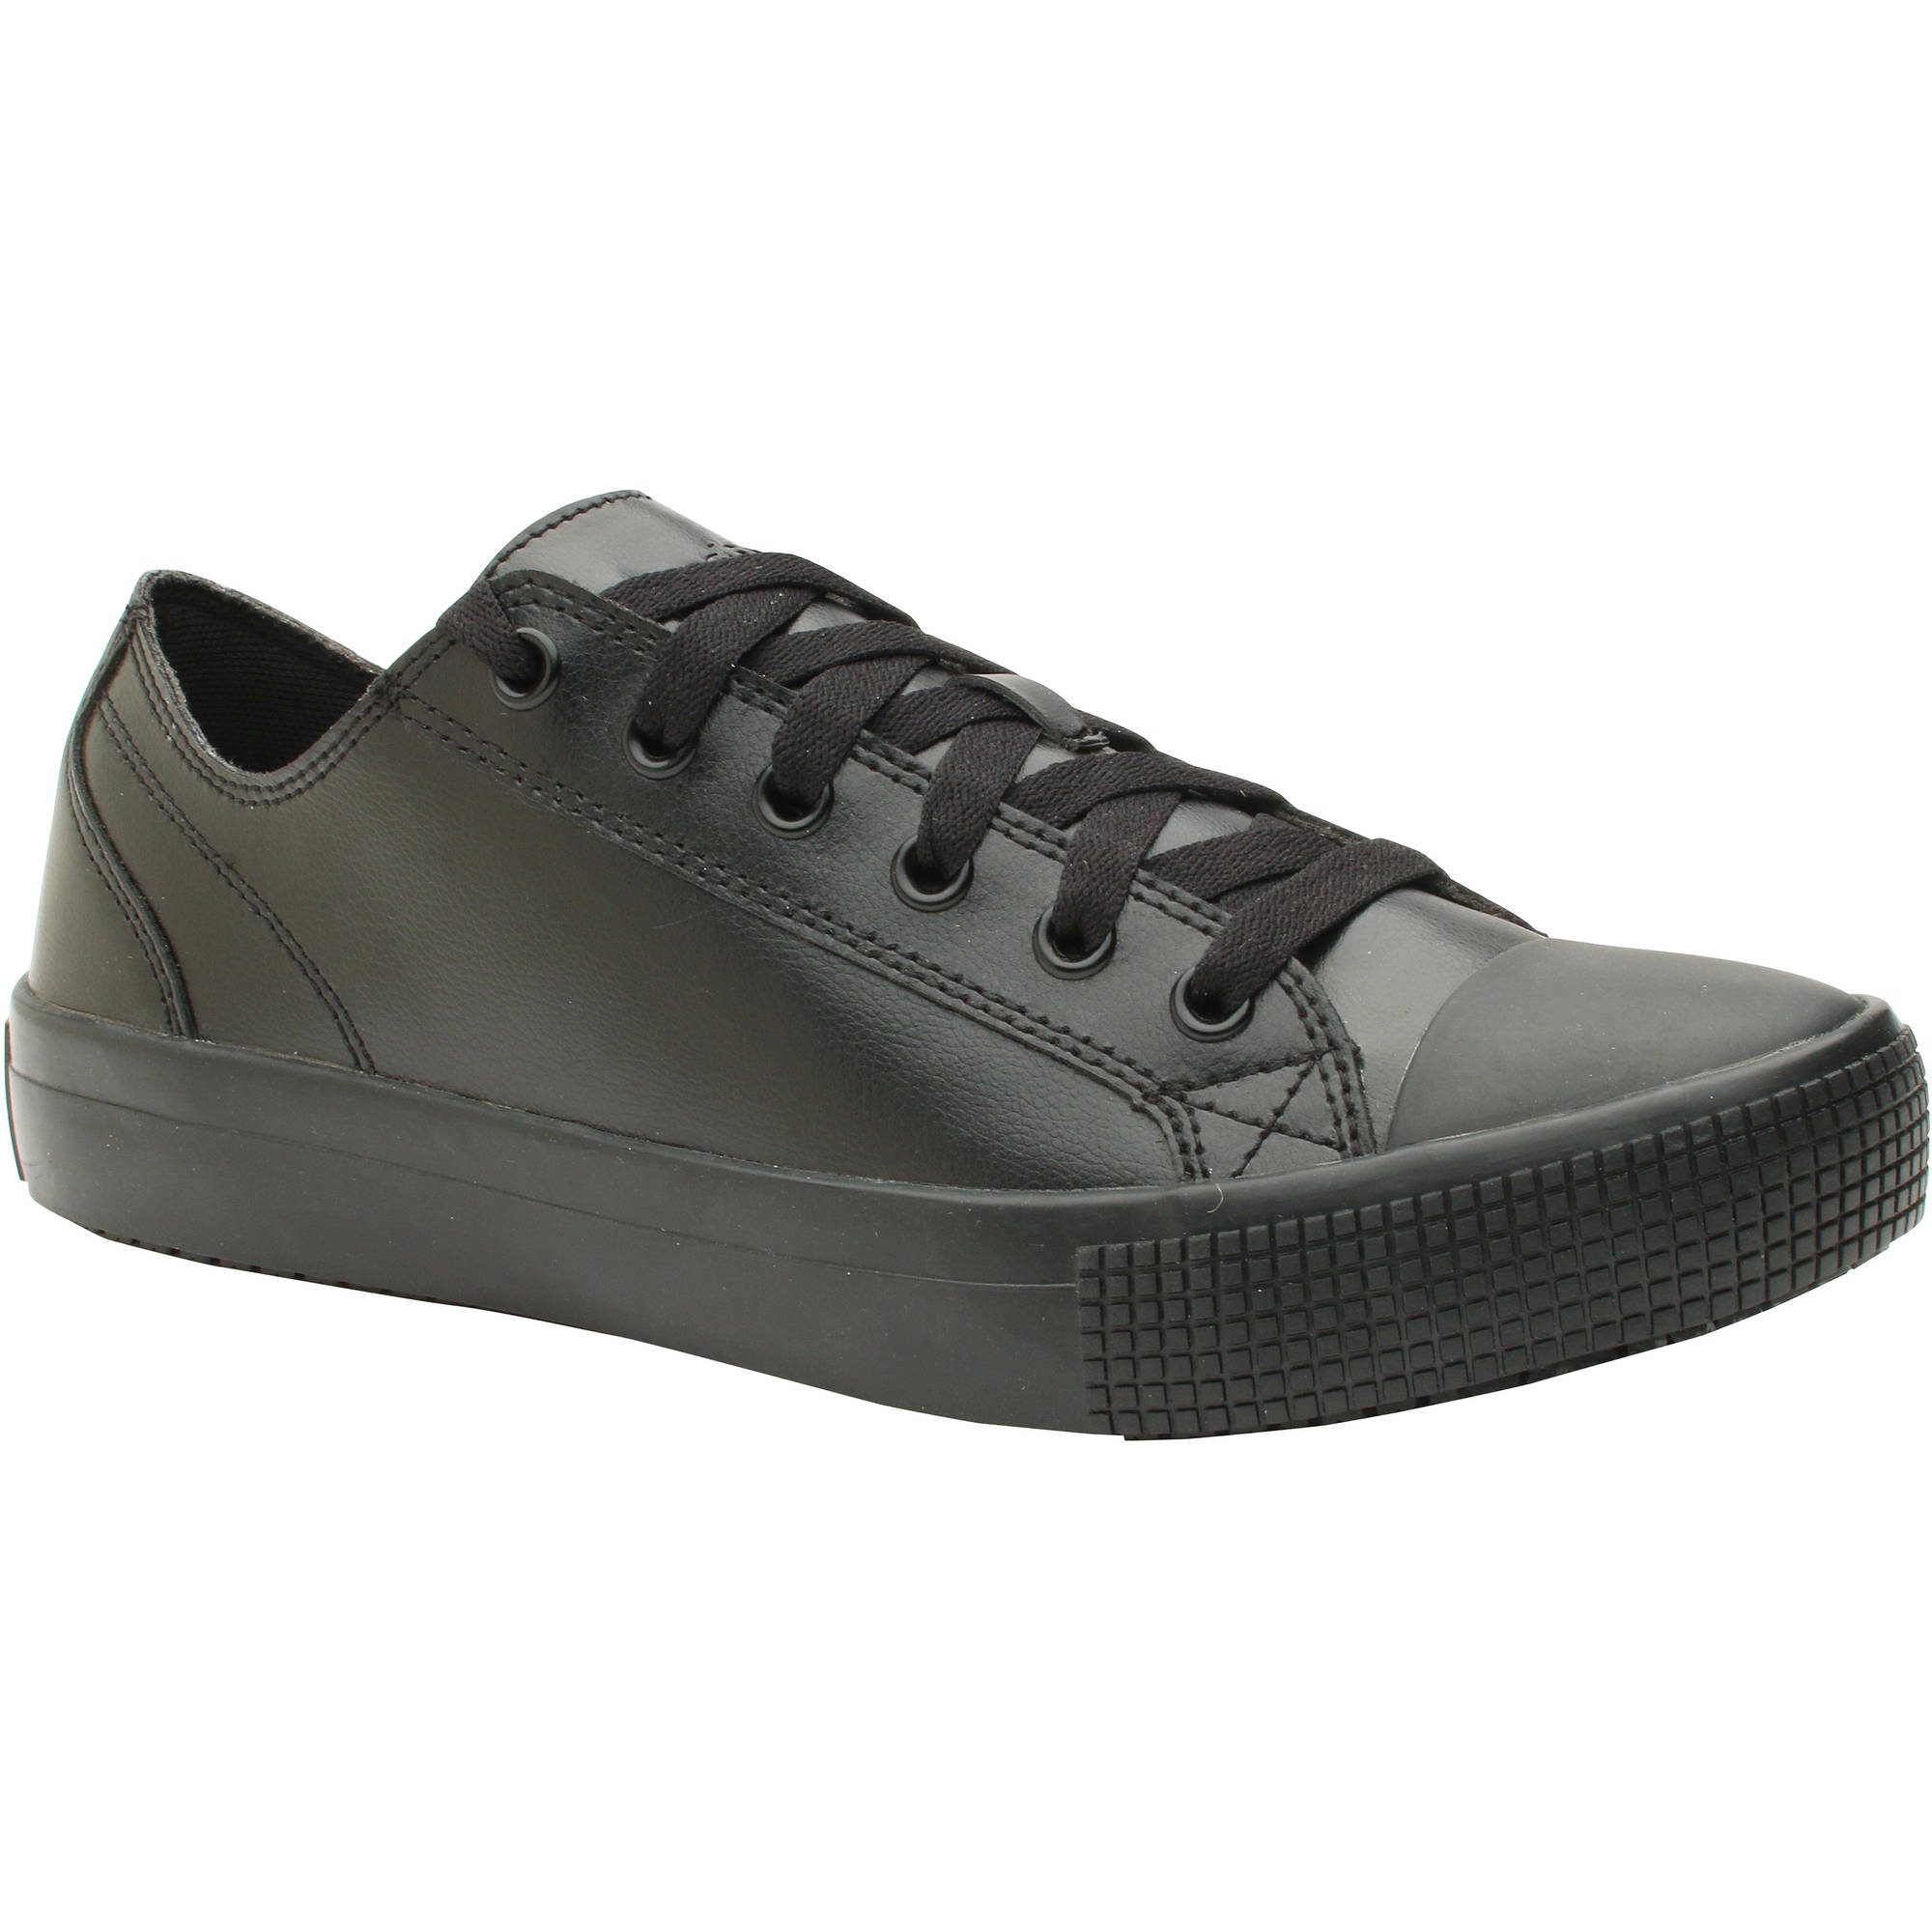 converse style non slip shoes